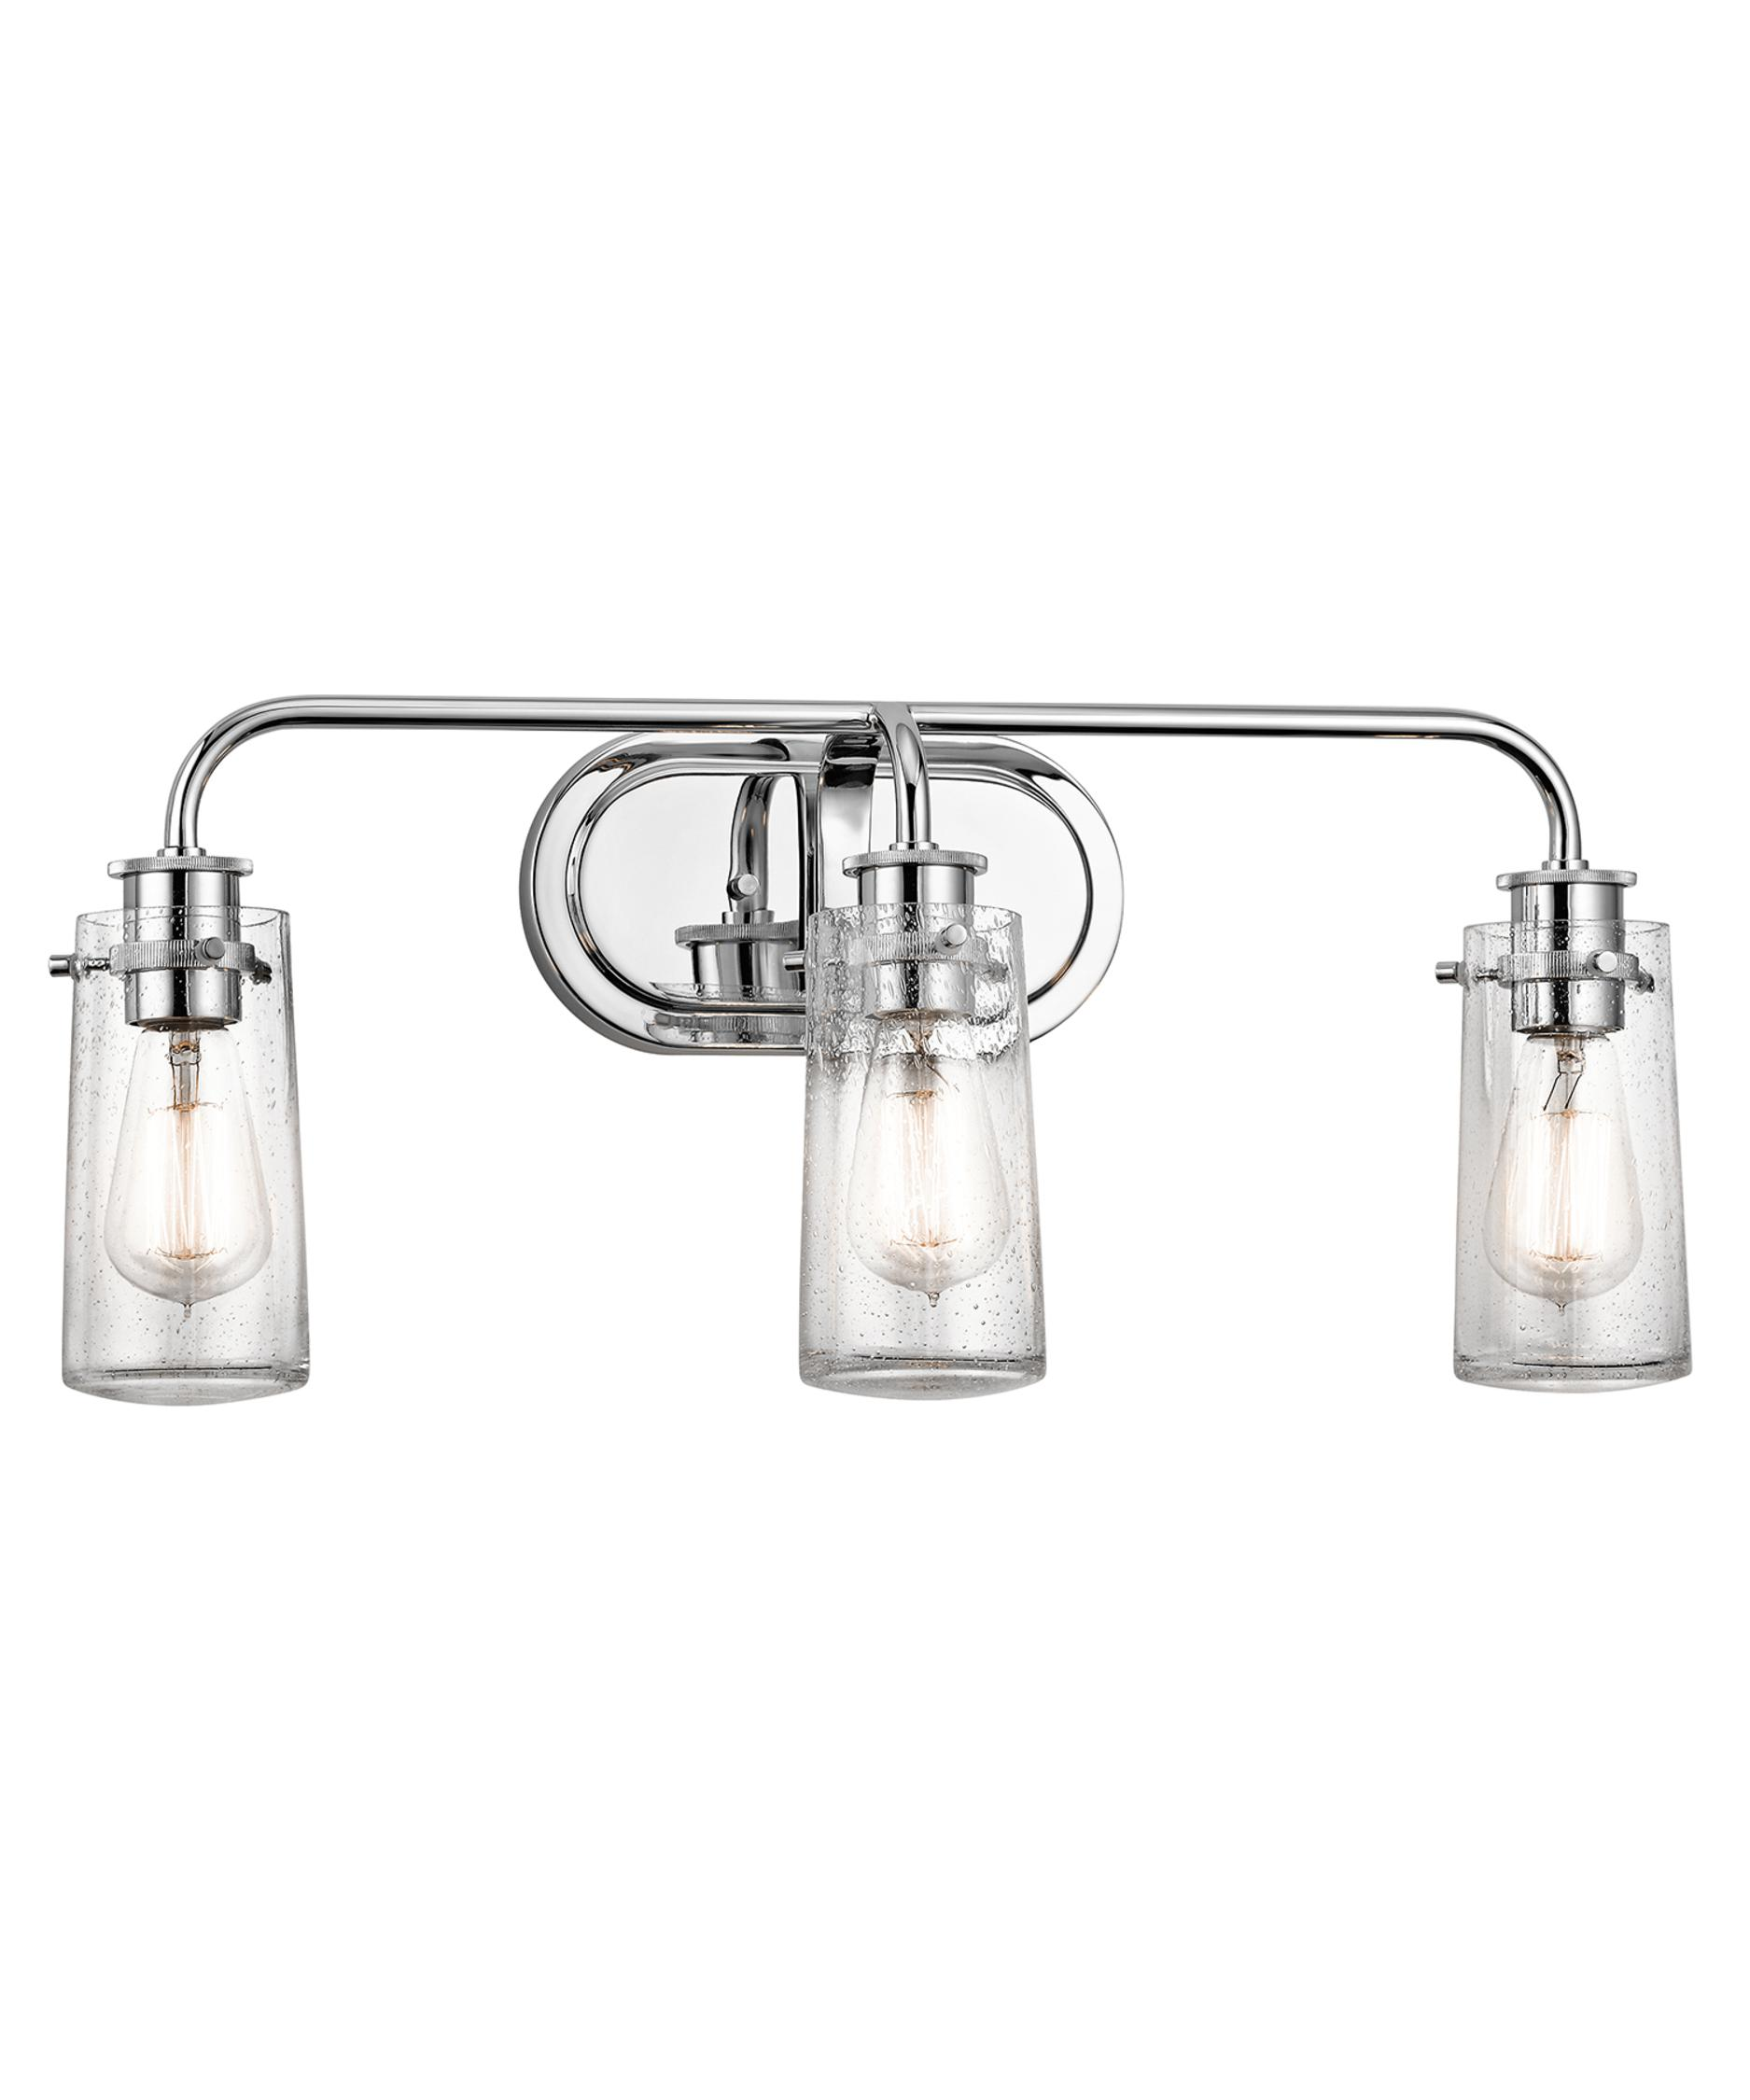 Bathroom Vanity Lights Kichler kichler 45459 braelyn 24 inch wide bath vanity light | capitol